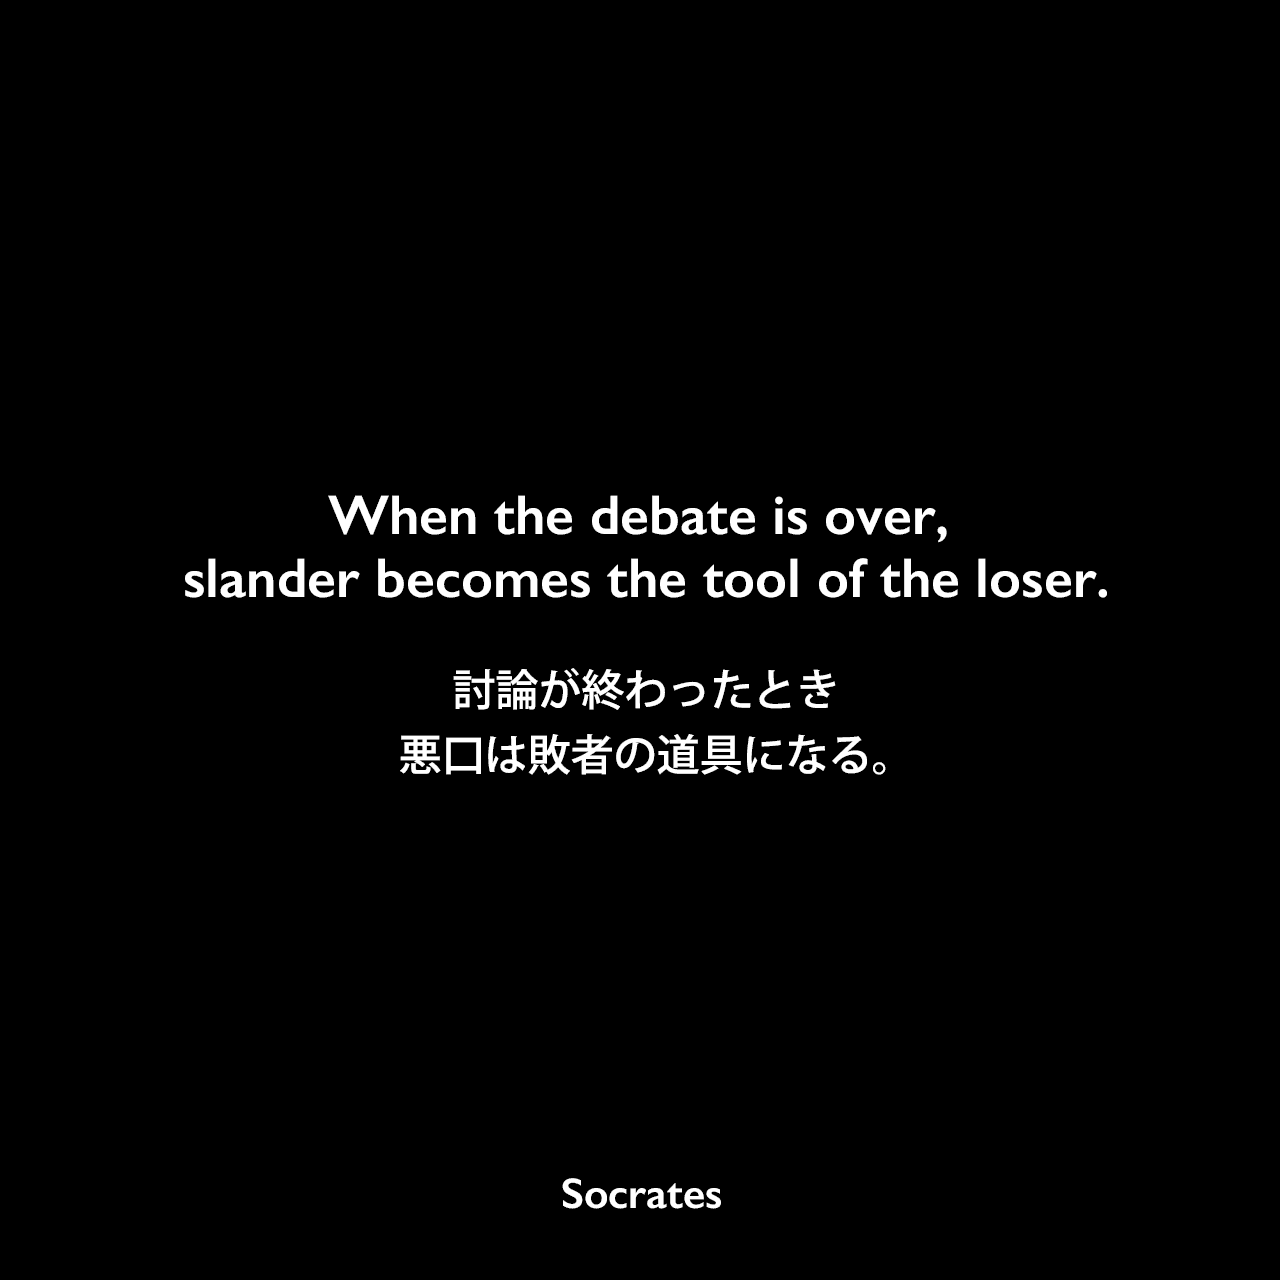 When the debate is over, slander becomes the tool of the loser.討論が終わったとき、悪口は敗者の道具になる。Socrates